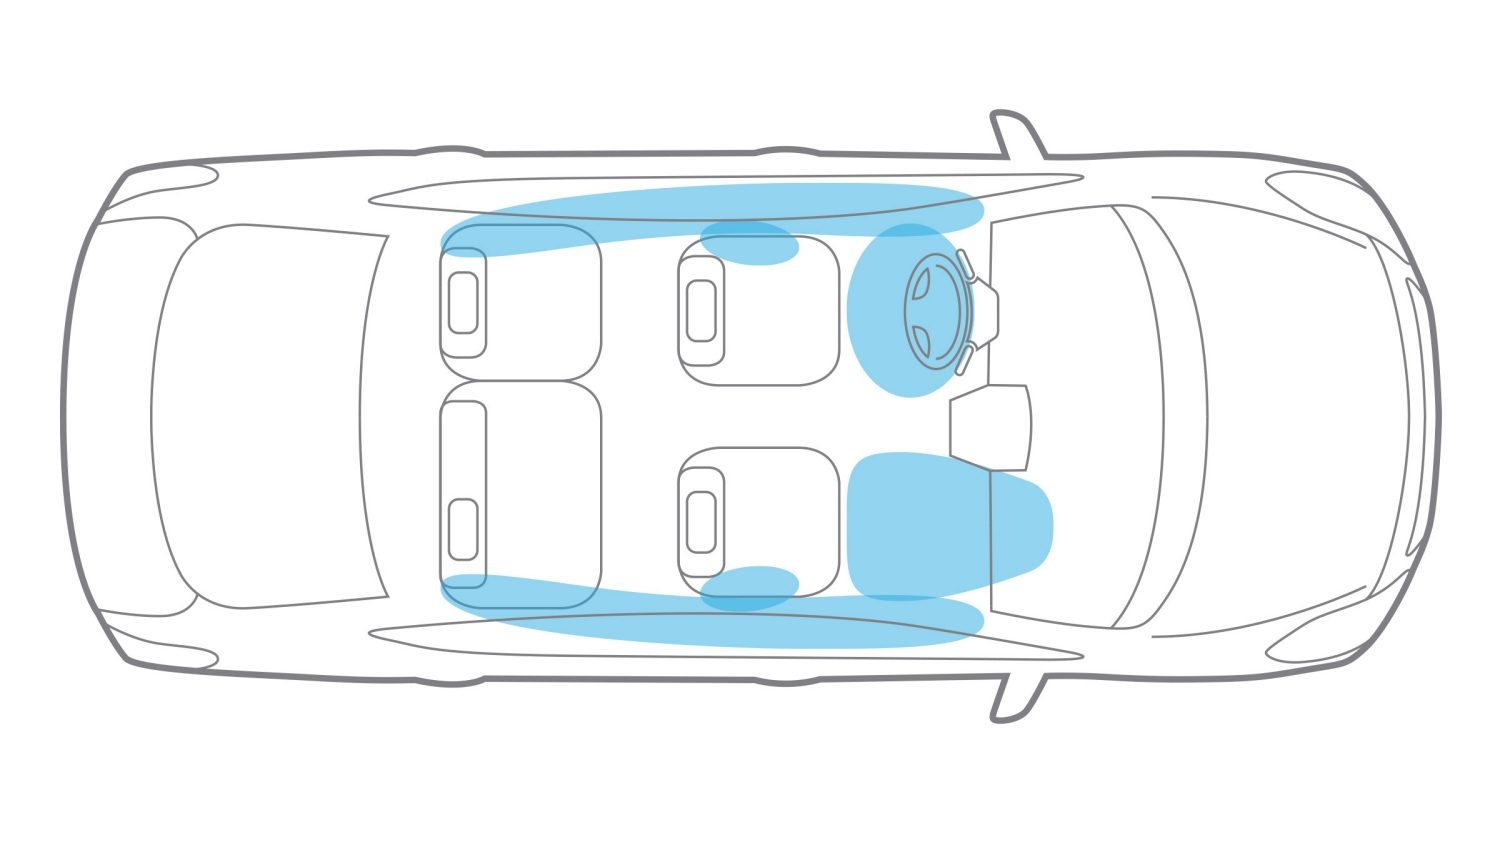 Nissan Versa Airbags illustration